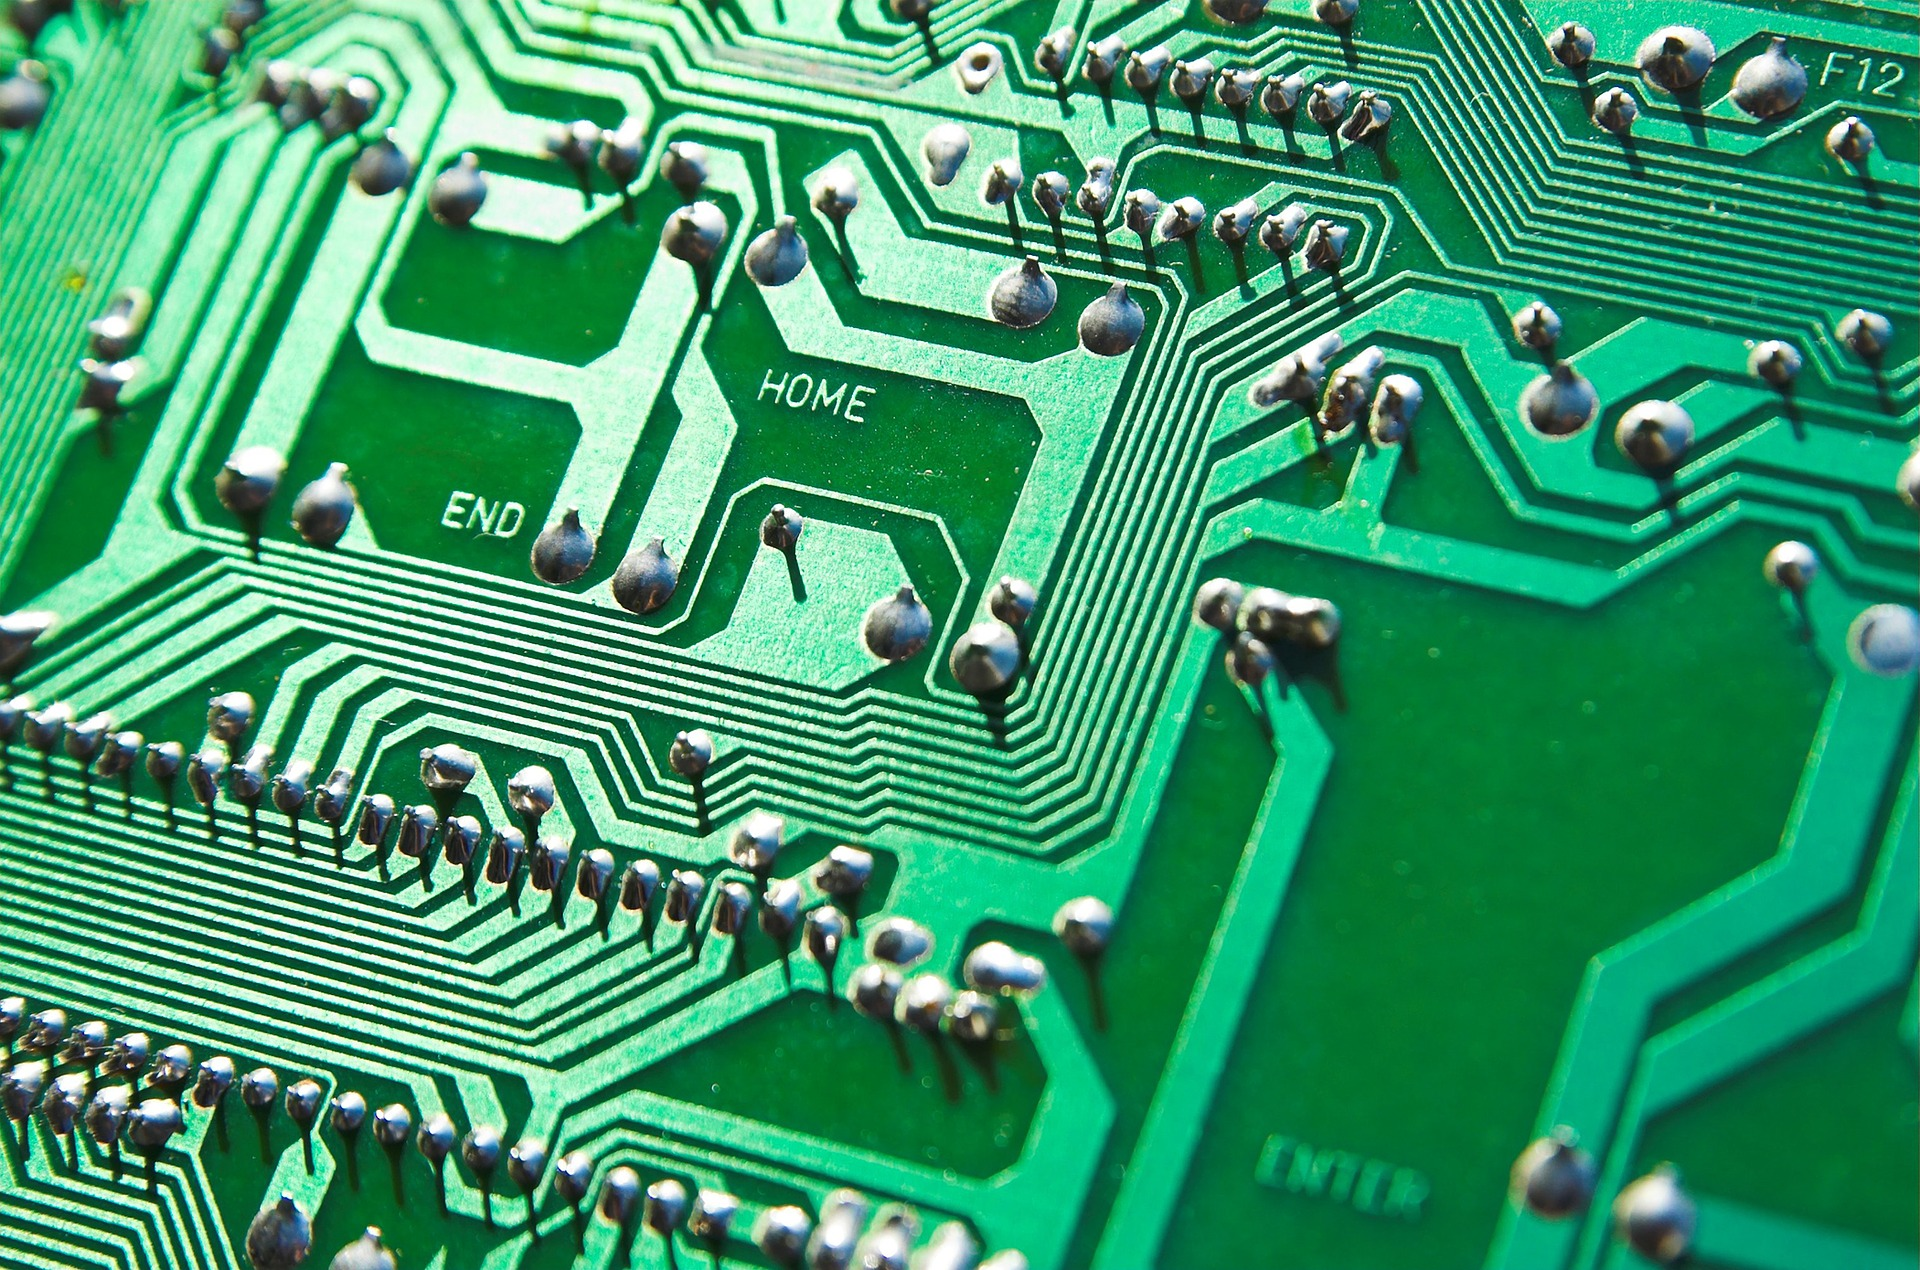 The Benefits Of Using Printed Circuit Boards